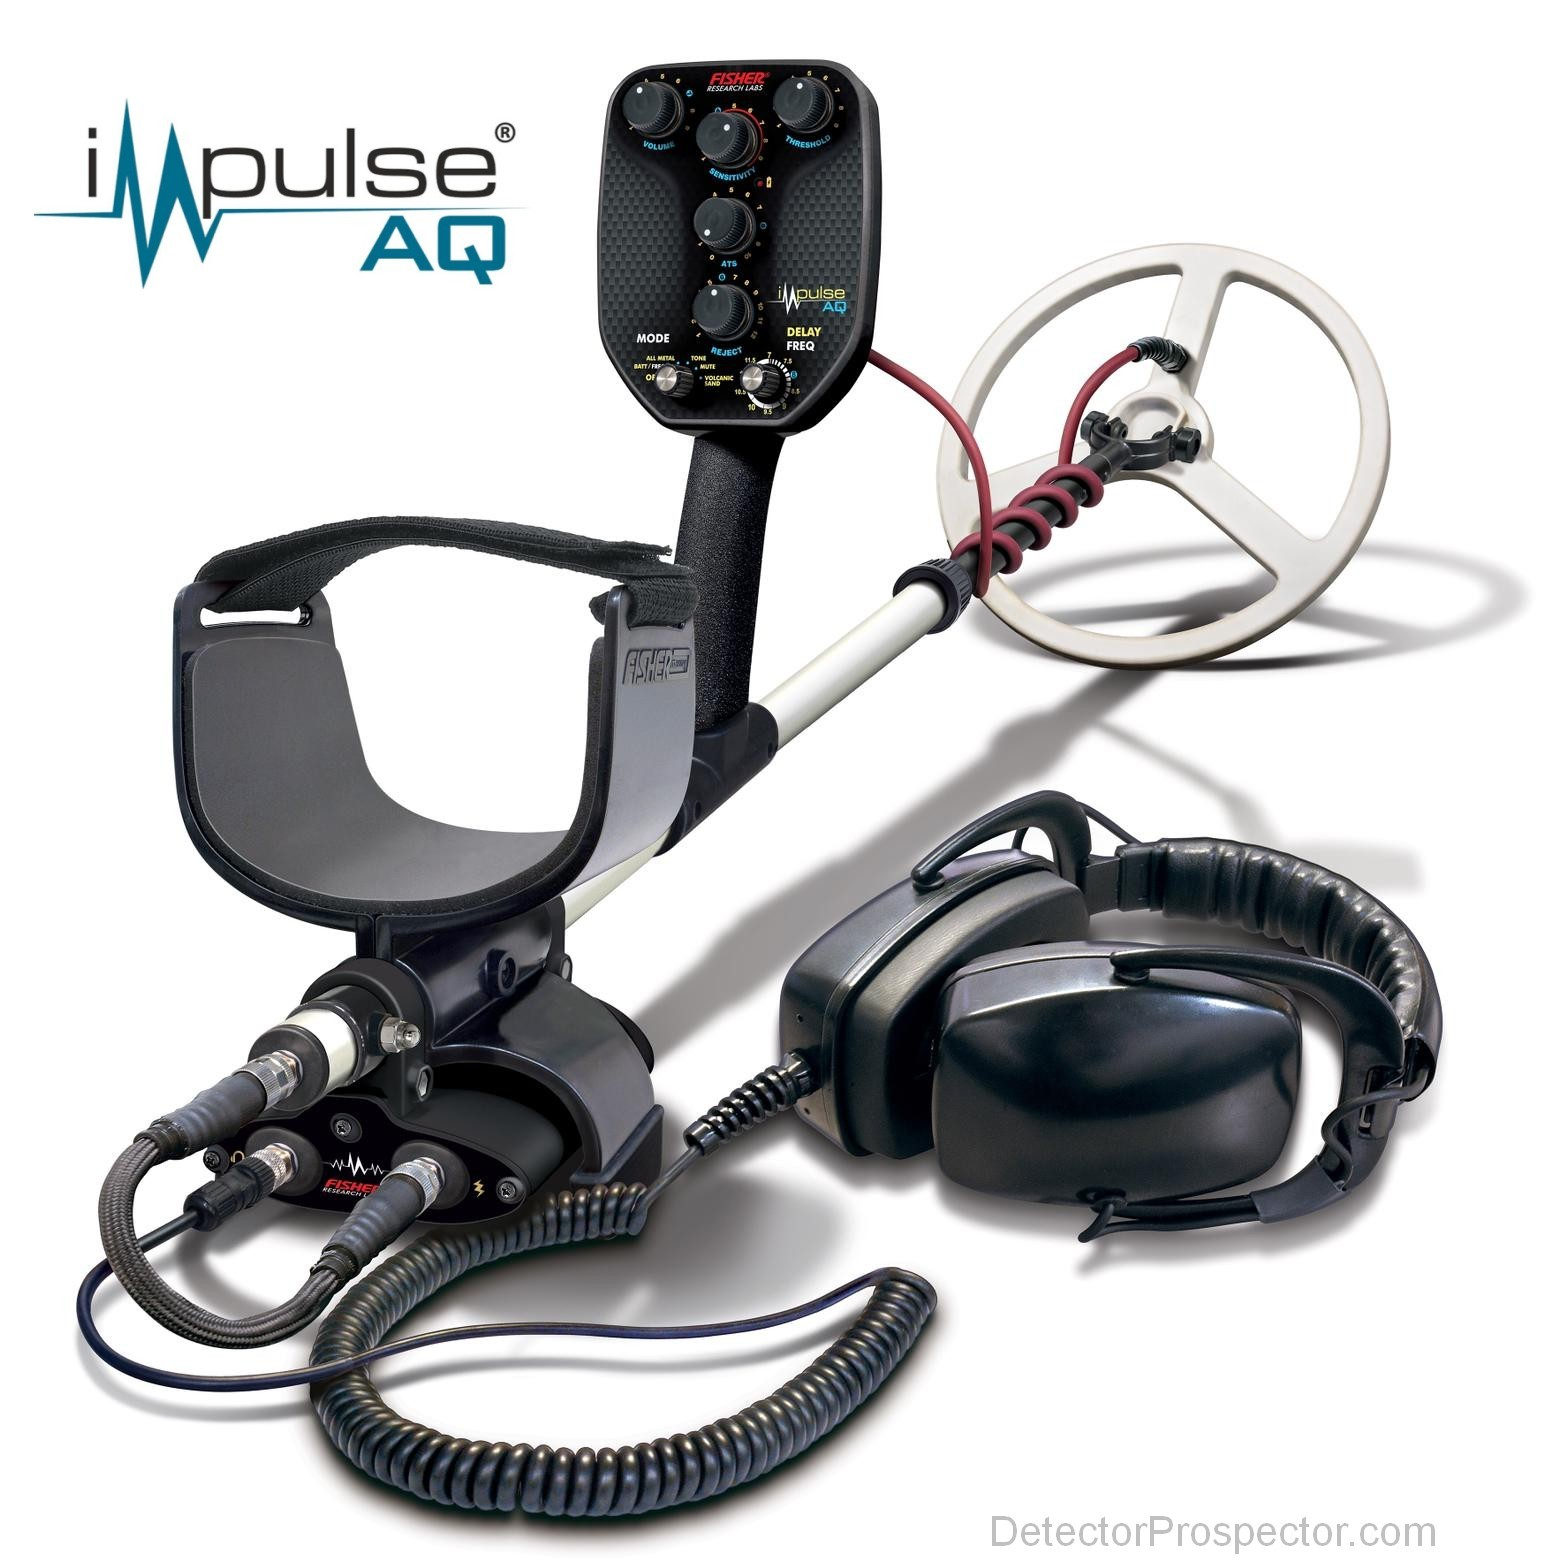 fisher-impulse-aq-discriminating-pulse-induction-jewelry-metal-detector.jpg